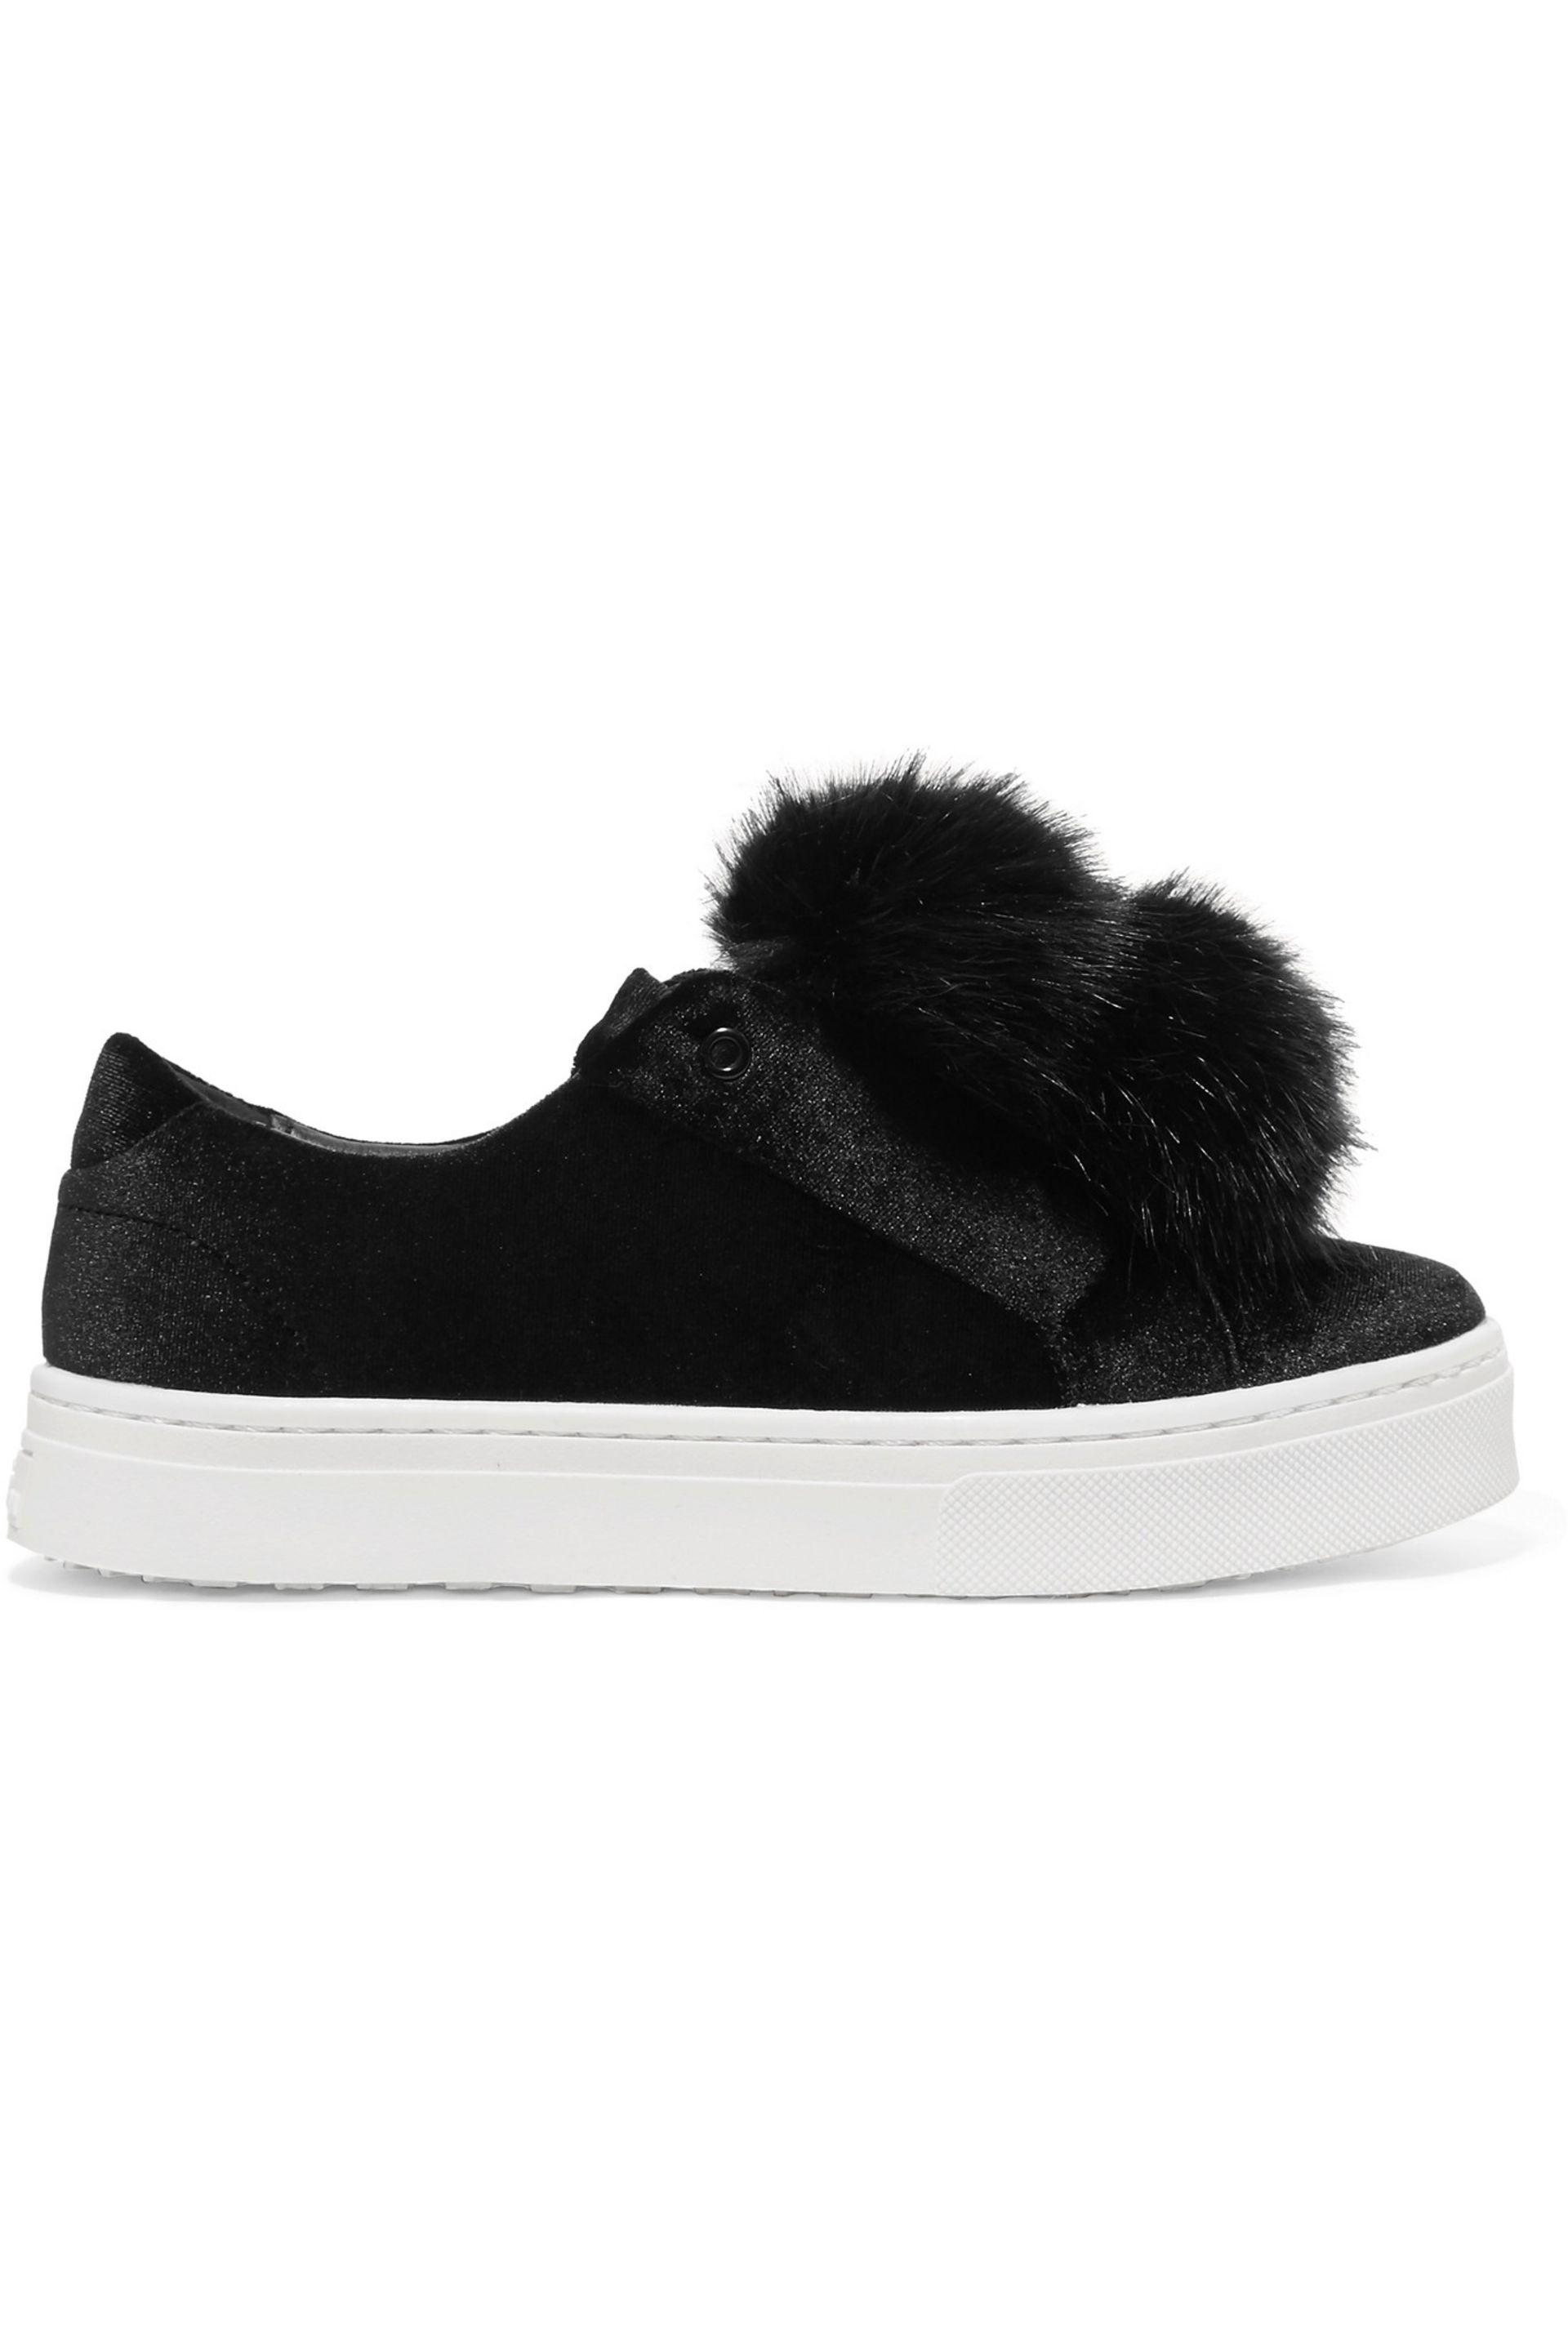 d1425c3b8002d8 Lyst - Sam Edelman Leya Faux Fur-embellished Velvet Slip-on Sneakers ...